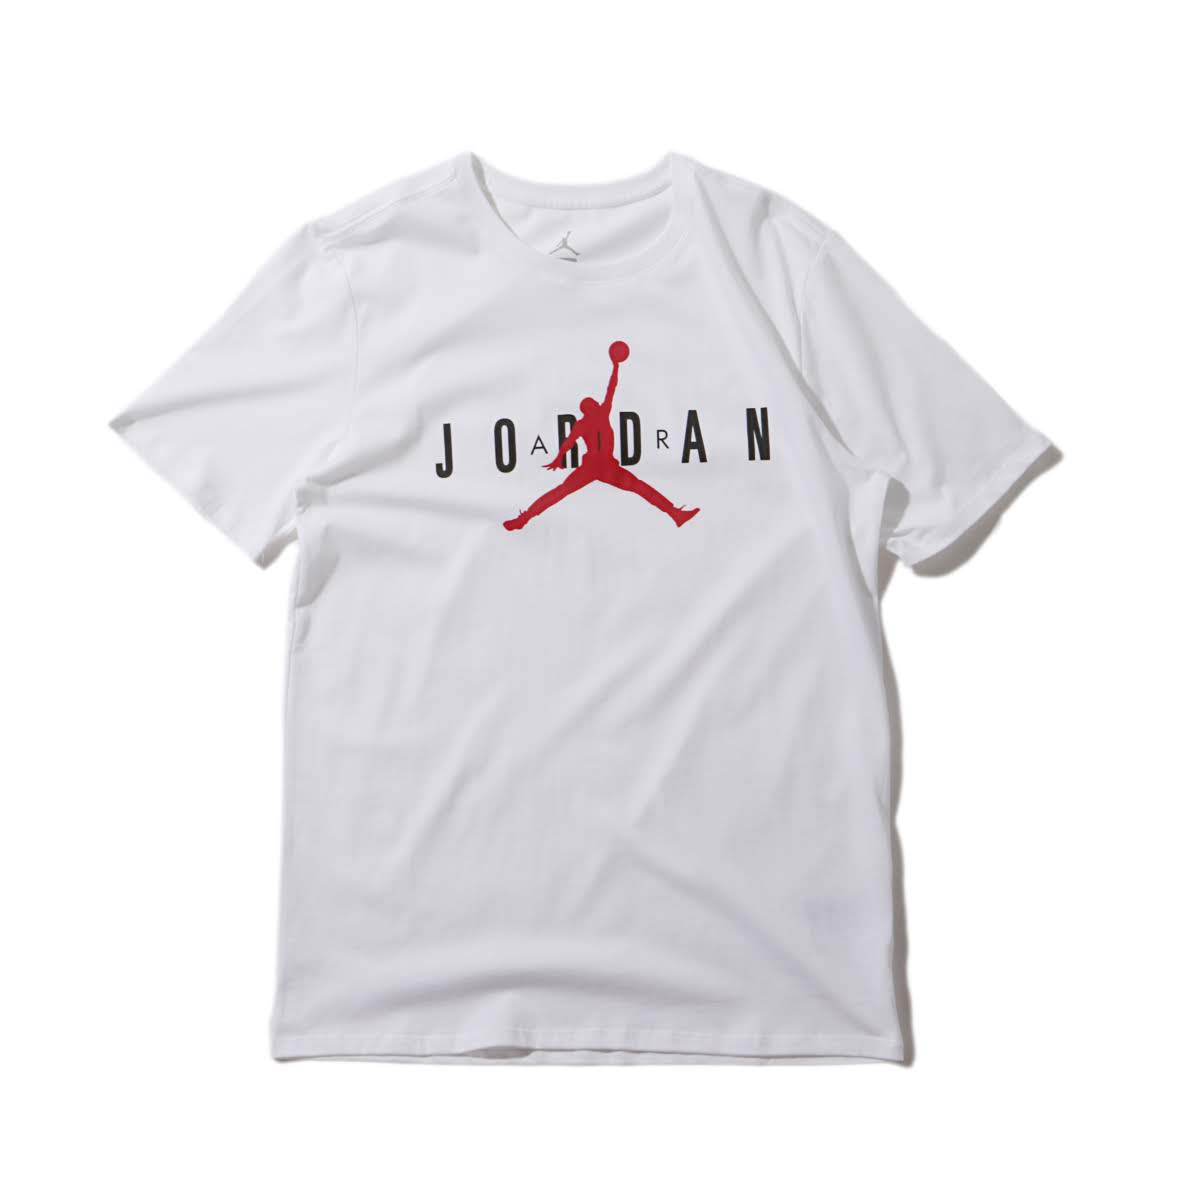 78459a78be21c1 ... player who printed graphic of Michael Jordan who is Aiko Nic to the  cotton jersey material that the Jordan sportswear brand 5 men s T-shirt is  soft.